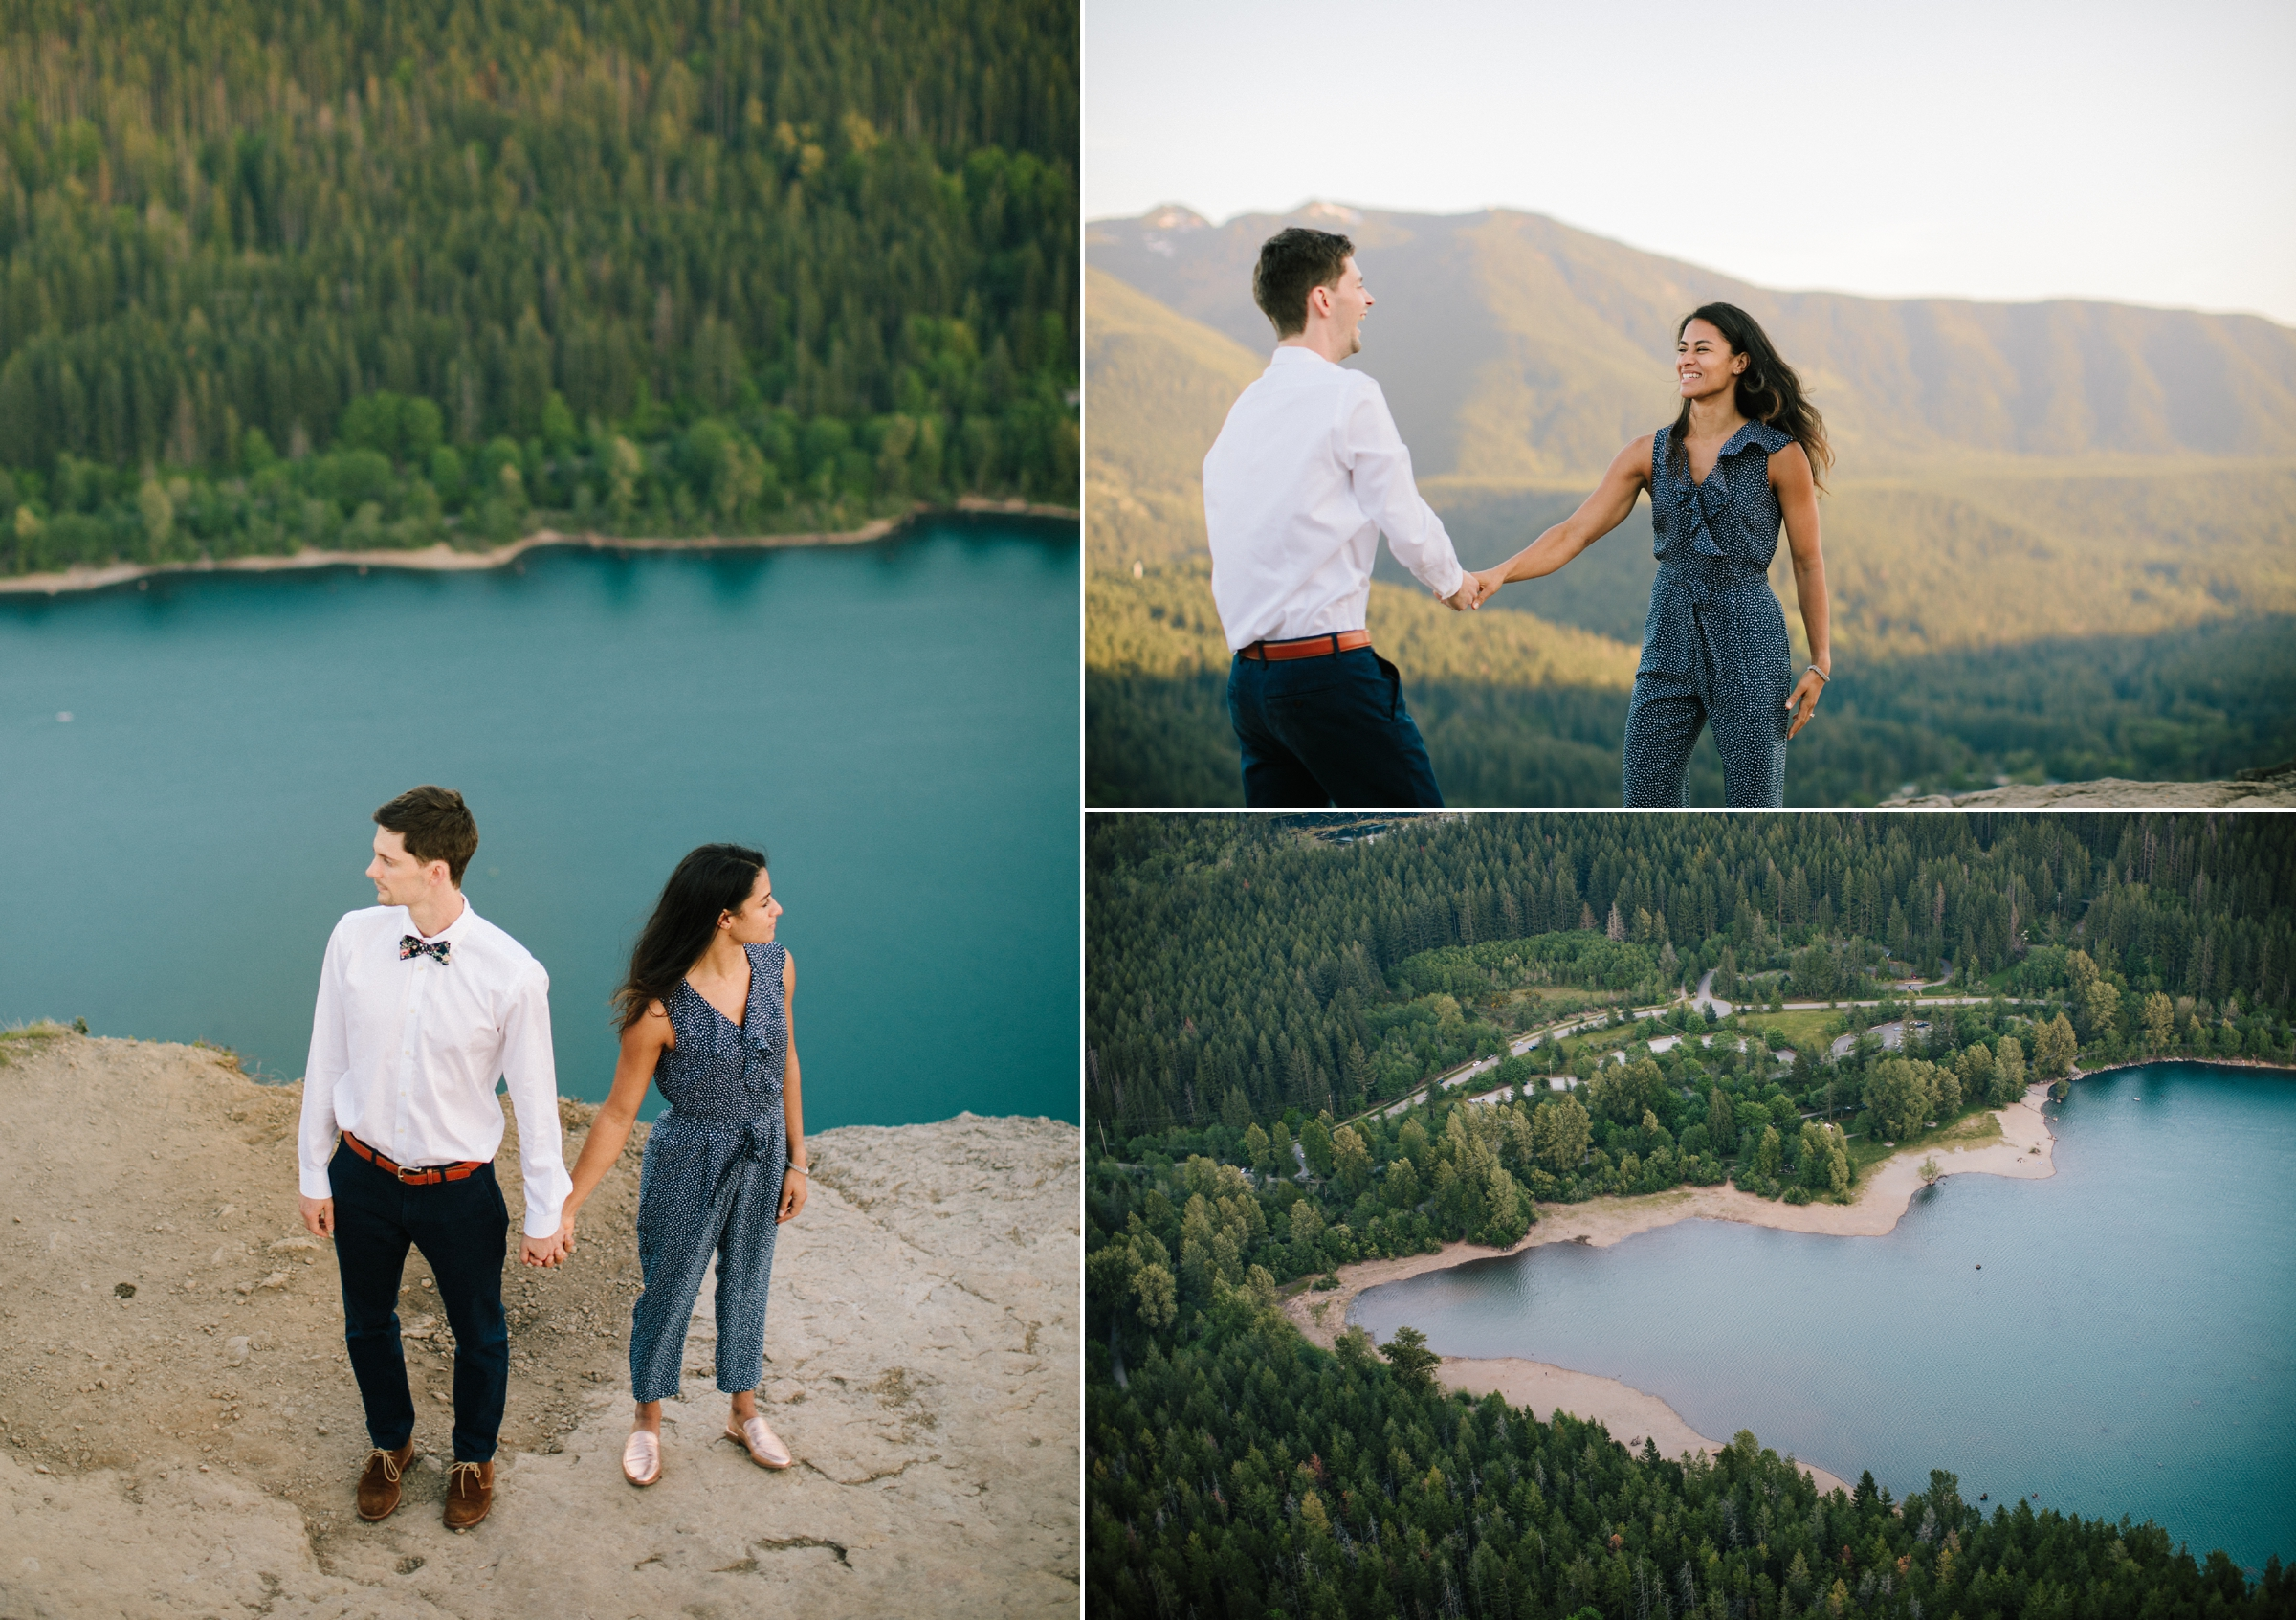 adventure-mountain-top-elopement-photographer-pnw-seattle-washington-wedding-engagement-hike-photography-catie-bergman_0020.jpg